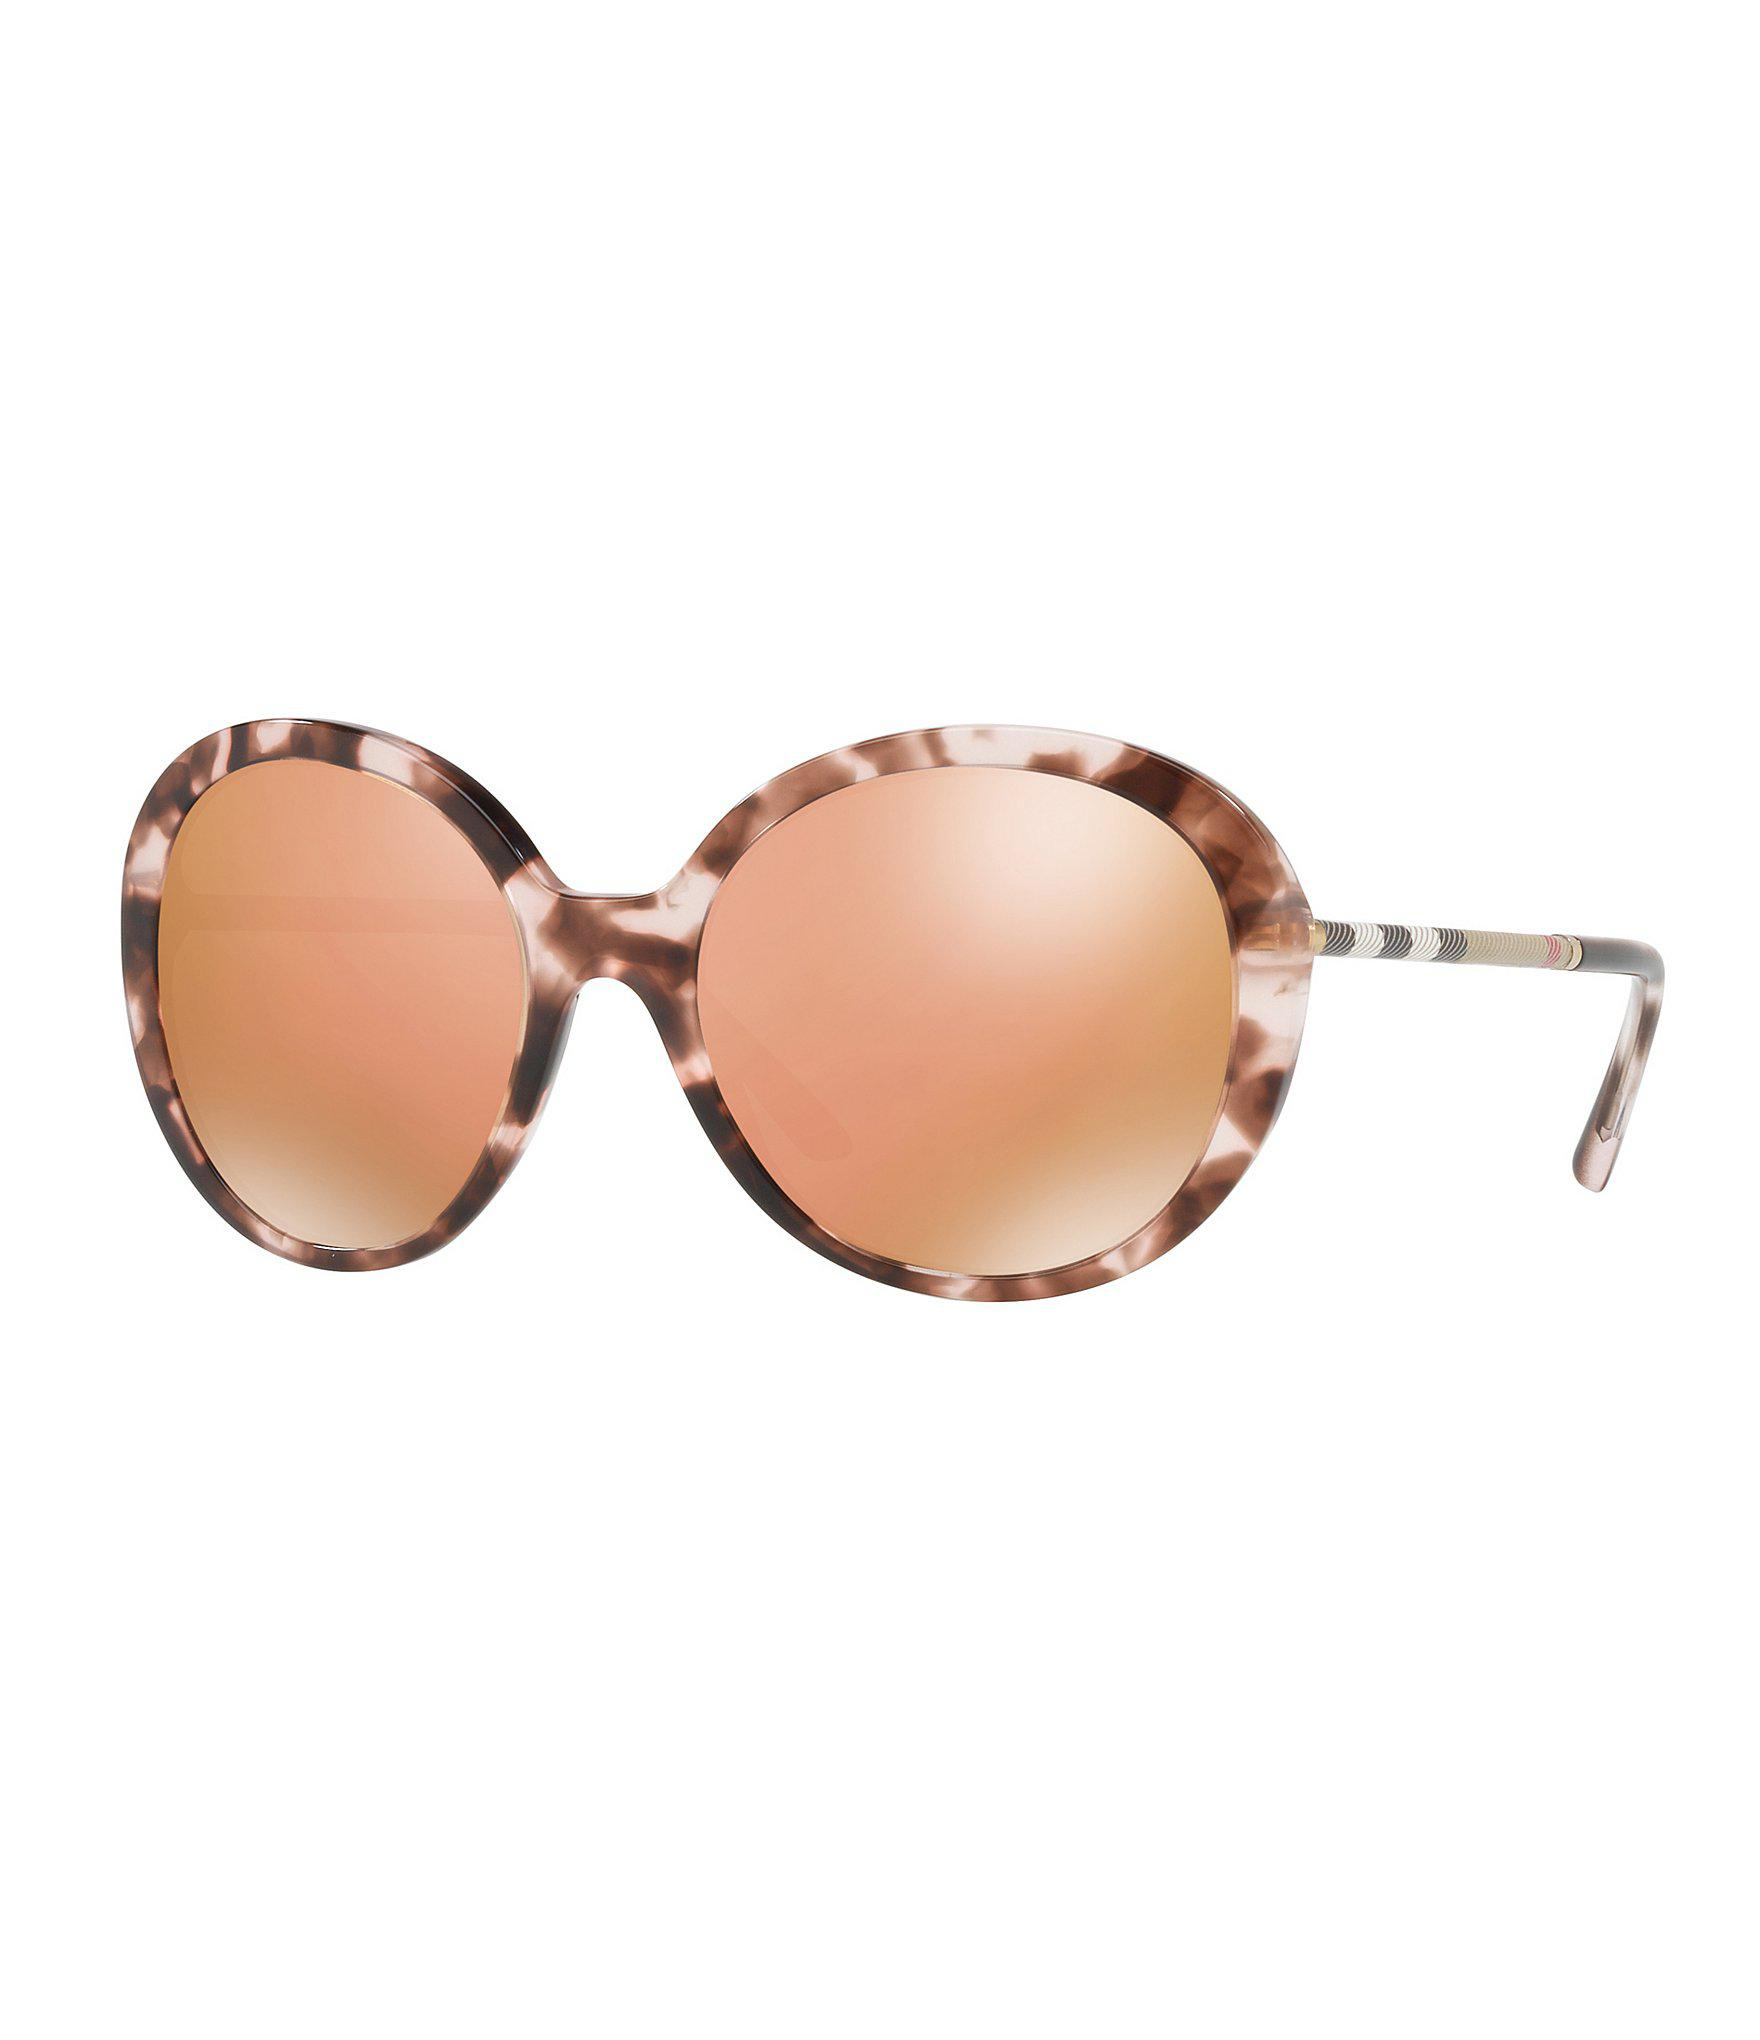 5cb65b2163bd Gallery. Previously sold at  Dillard s · Women s Mirrored Sunglasses